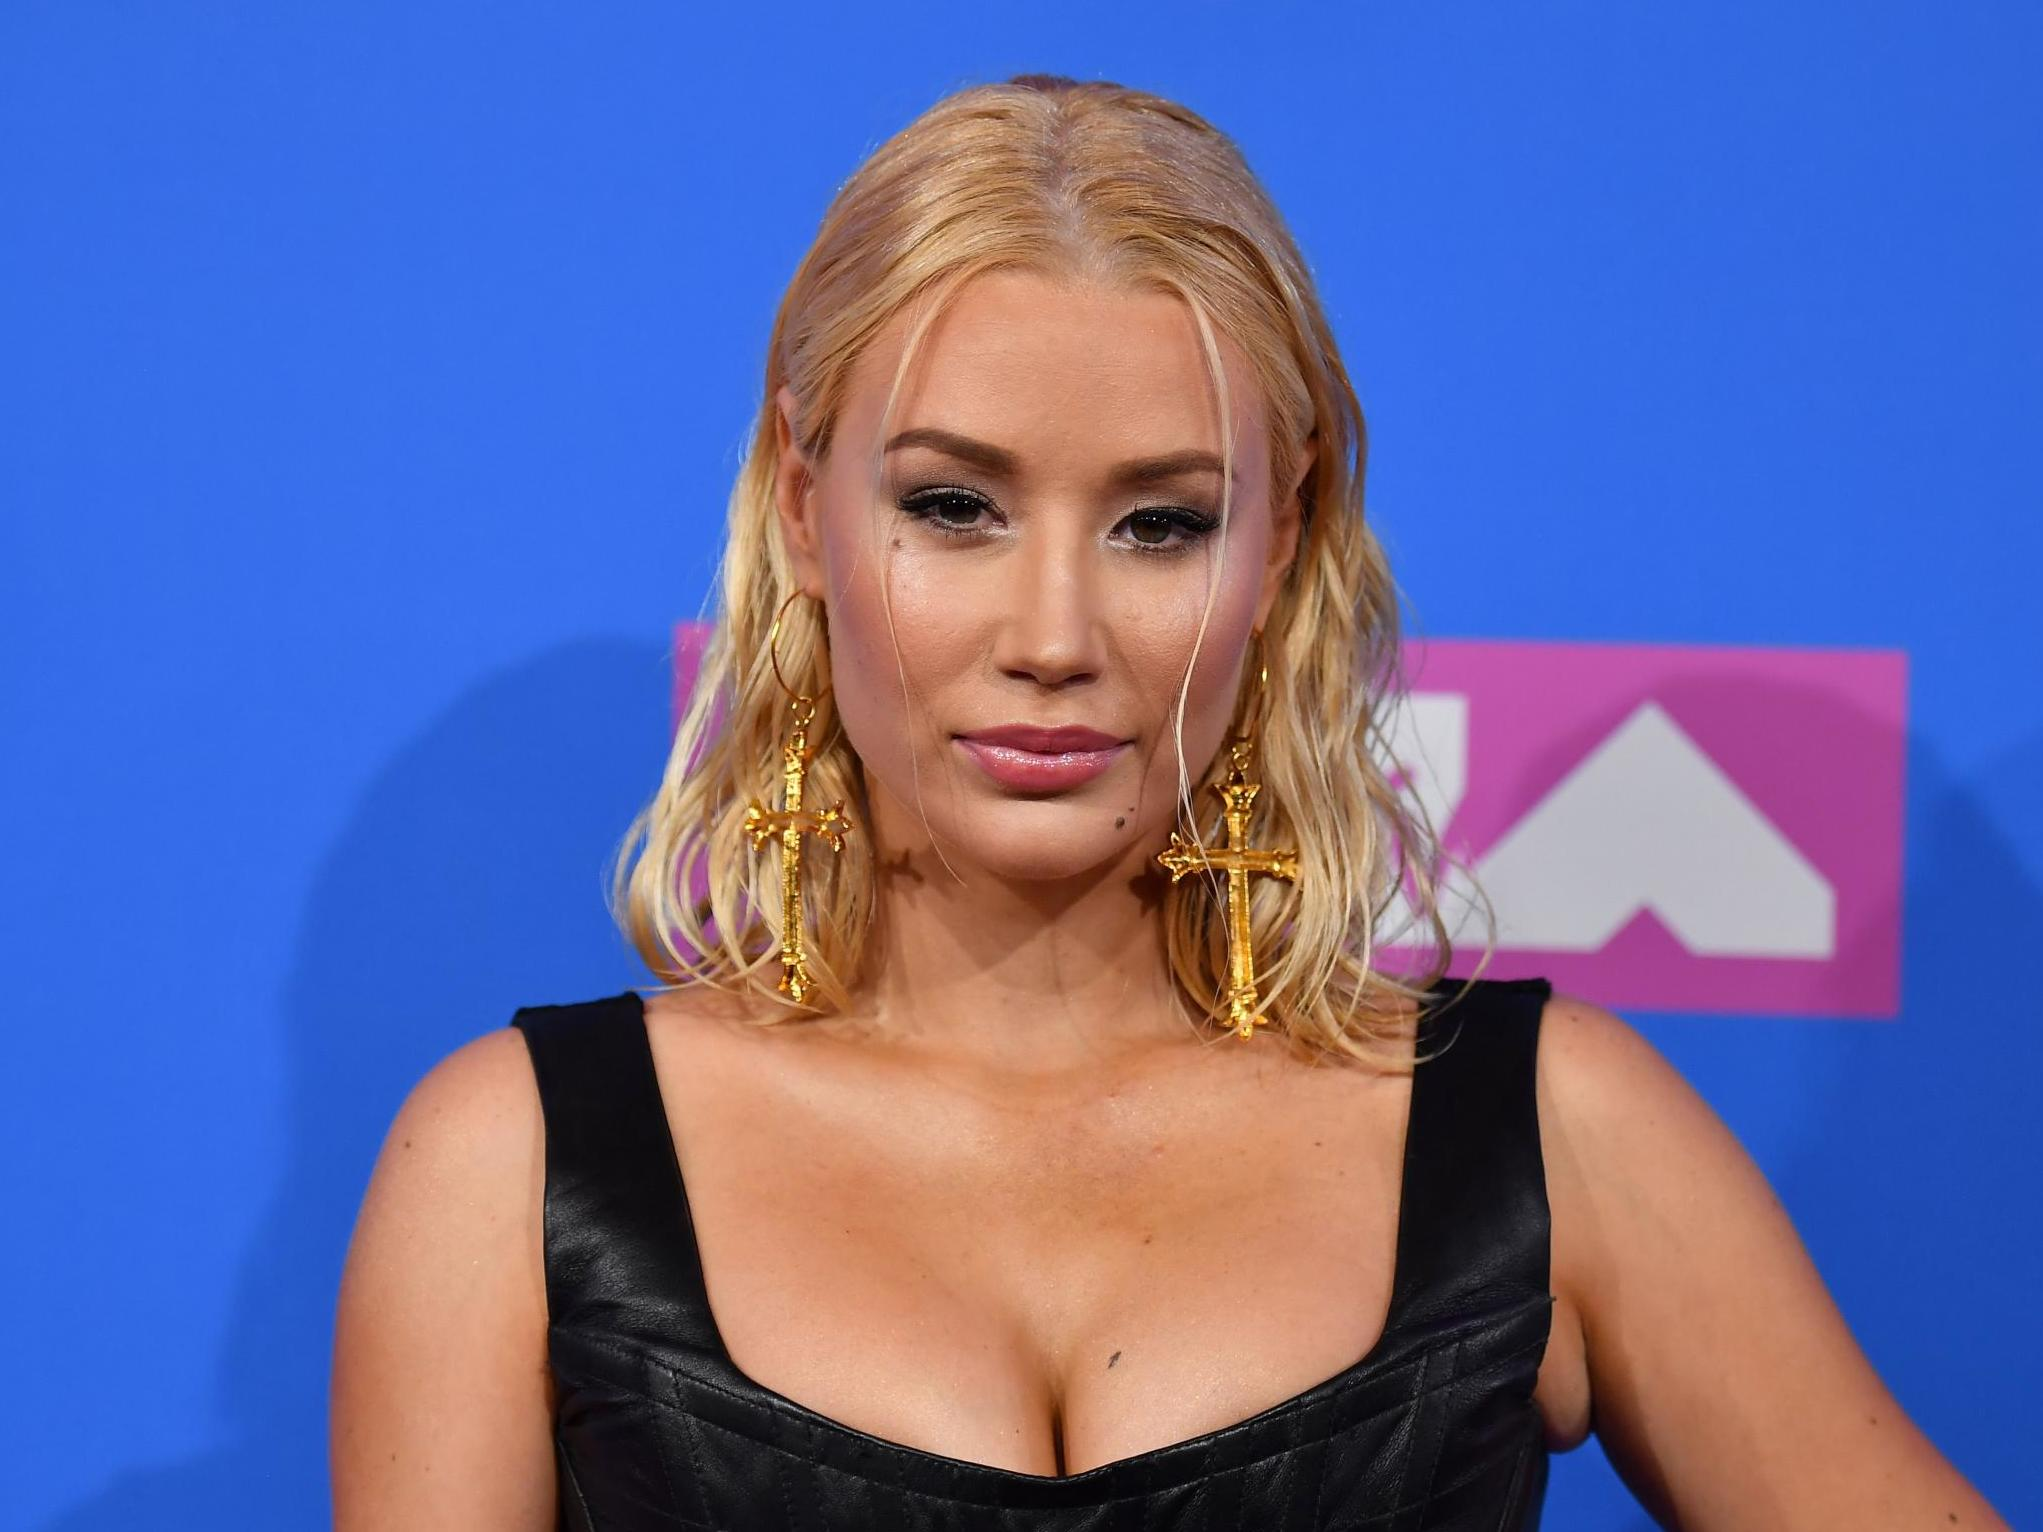 Iggy Azalea says burglar stole more than £285,000 worth of jewellery from home